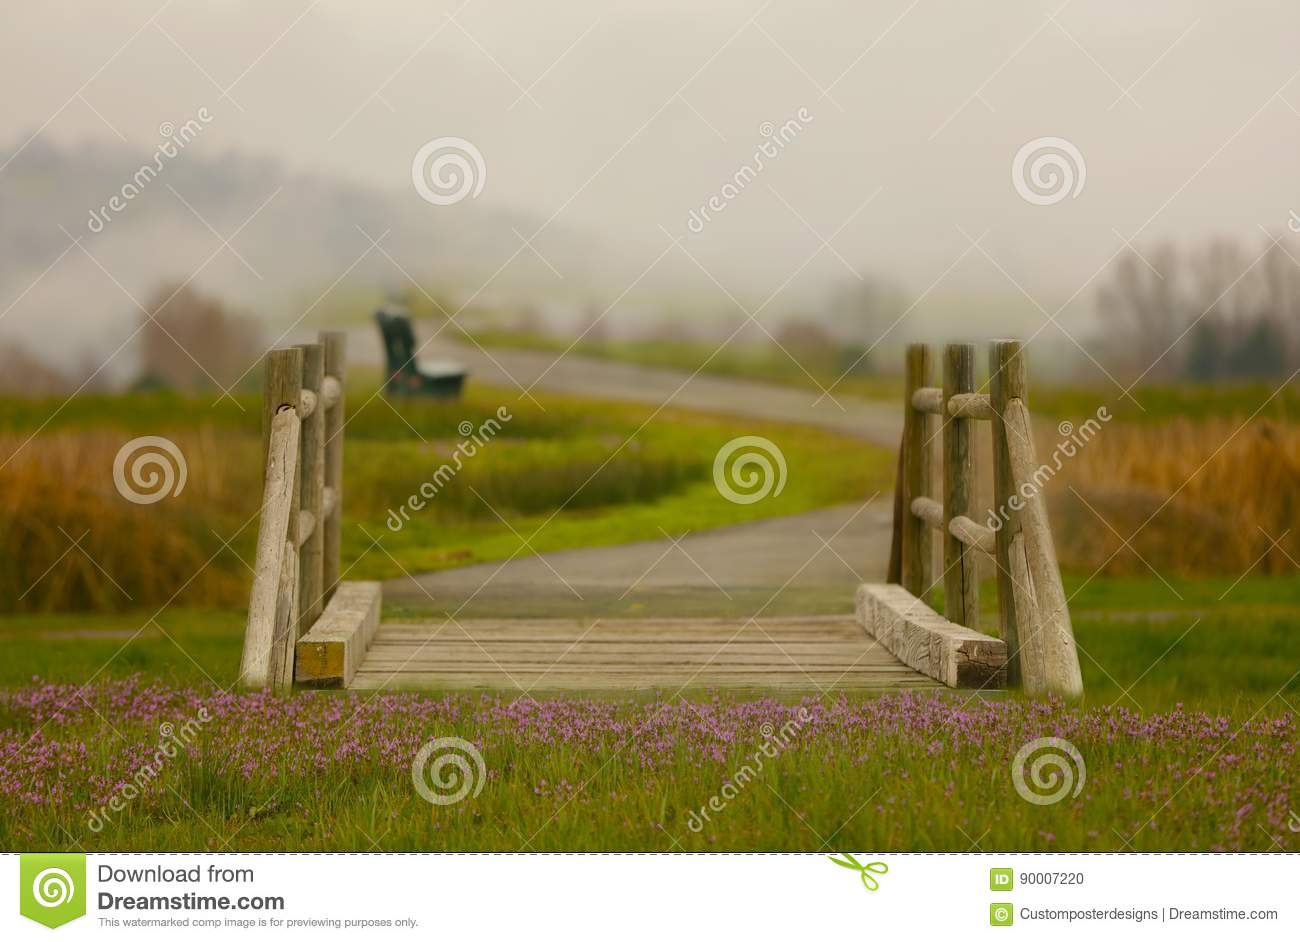 Download A Fantasy Bridge With Flower And Fog In The Background. Stock Photo - Image of backdrop, fantasy: 90007220